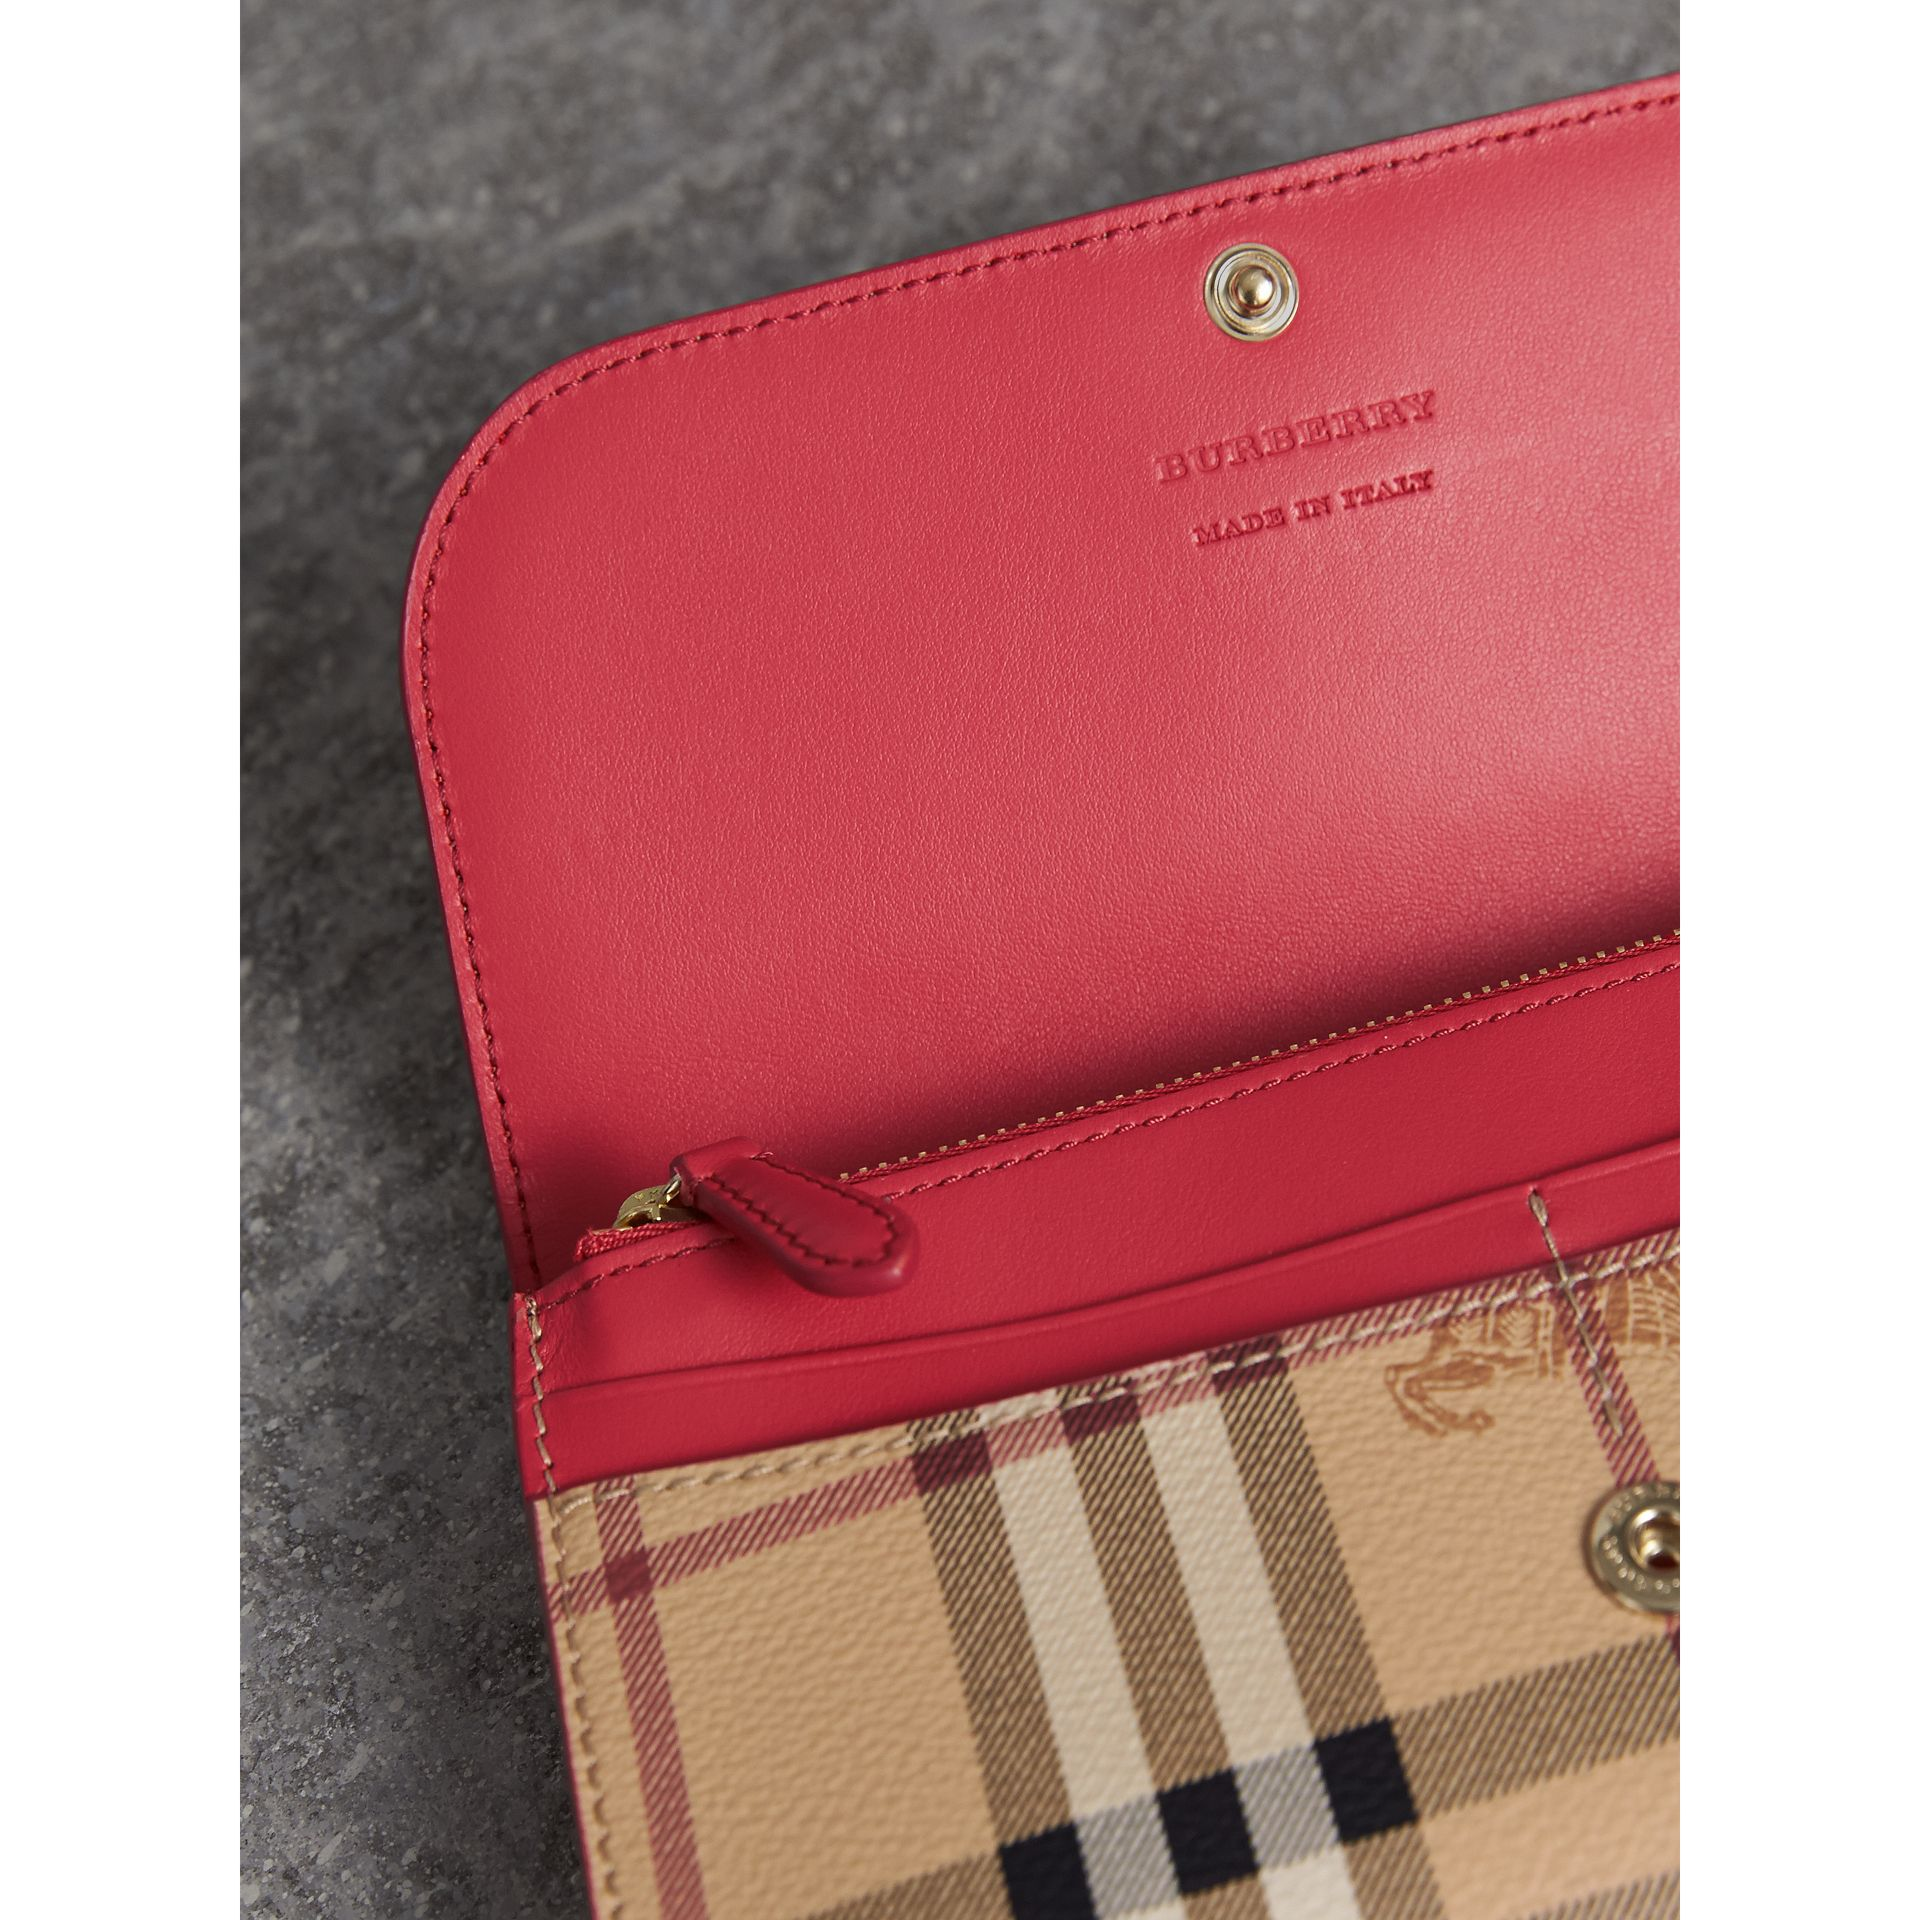 Haymarket Check and Leather Slim Continental Wallet in Coral Red - Women | Burberry Singapore - gallery image 4